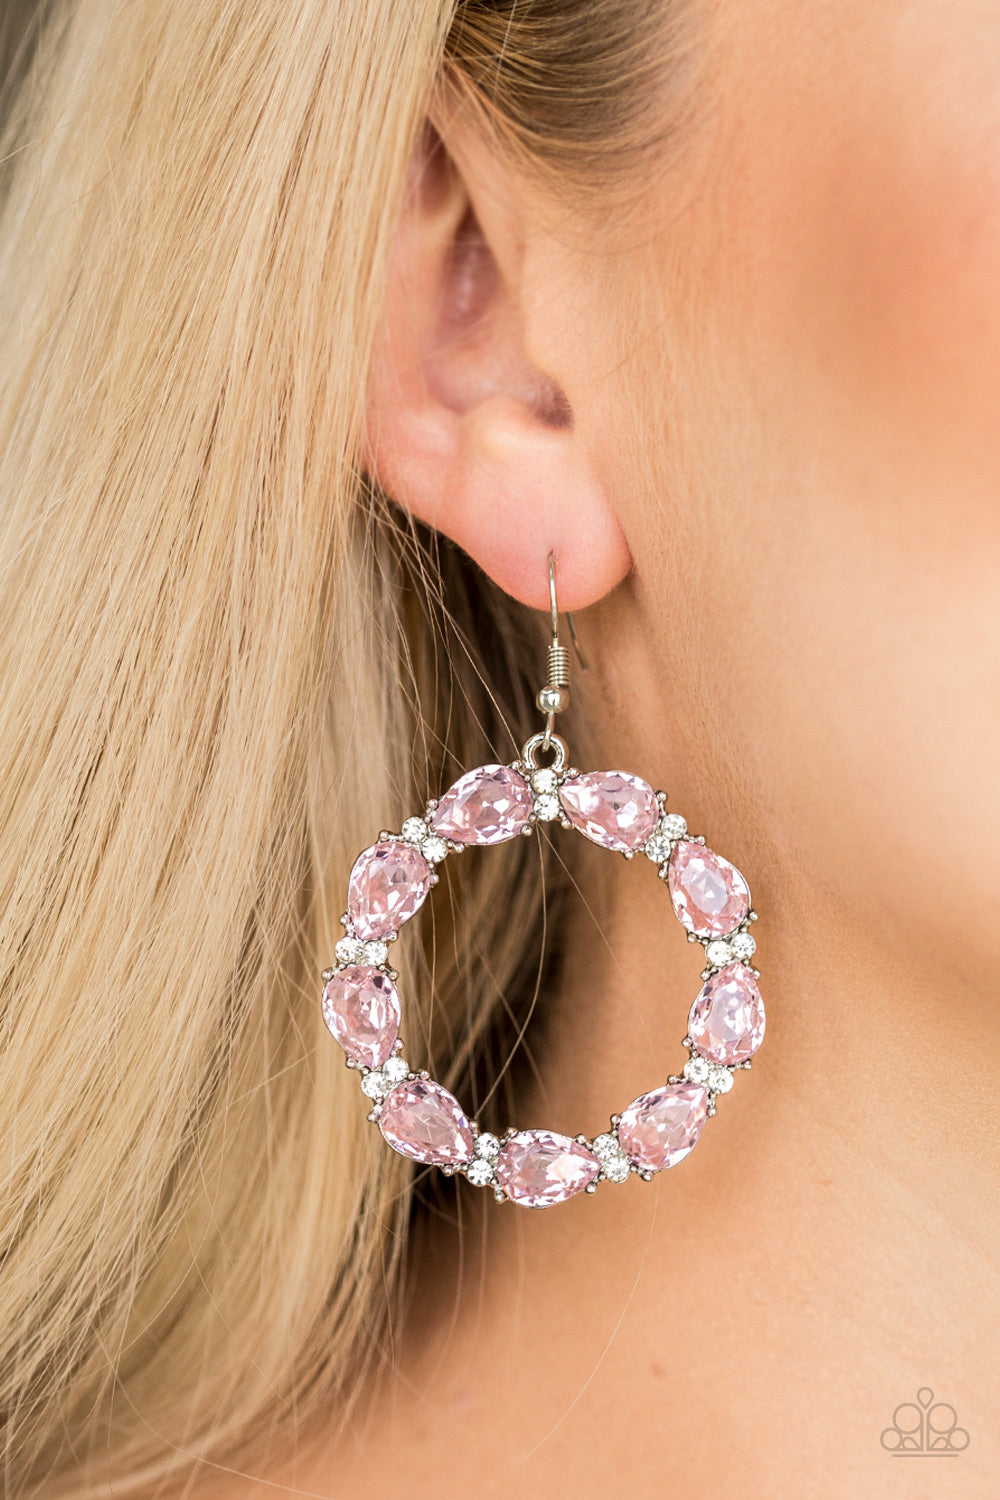 Ring Around the Rhinestones - Pink Earrings - SavvyChicksJewelry